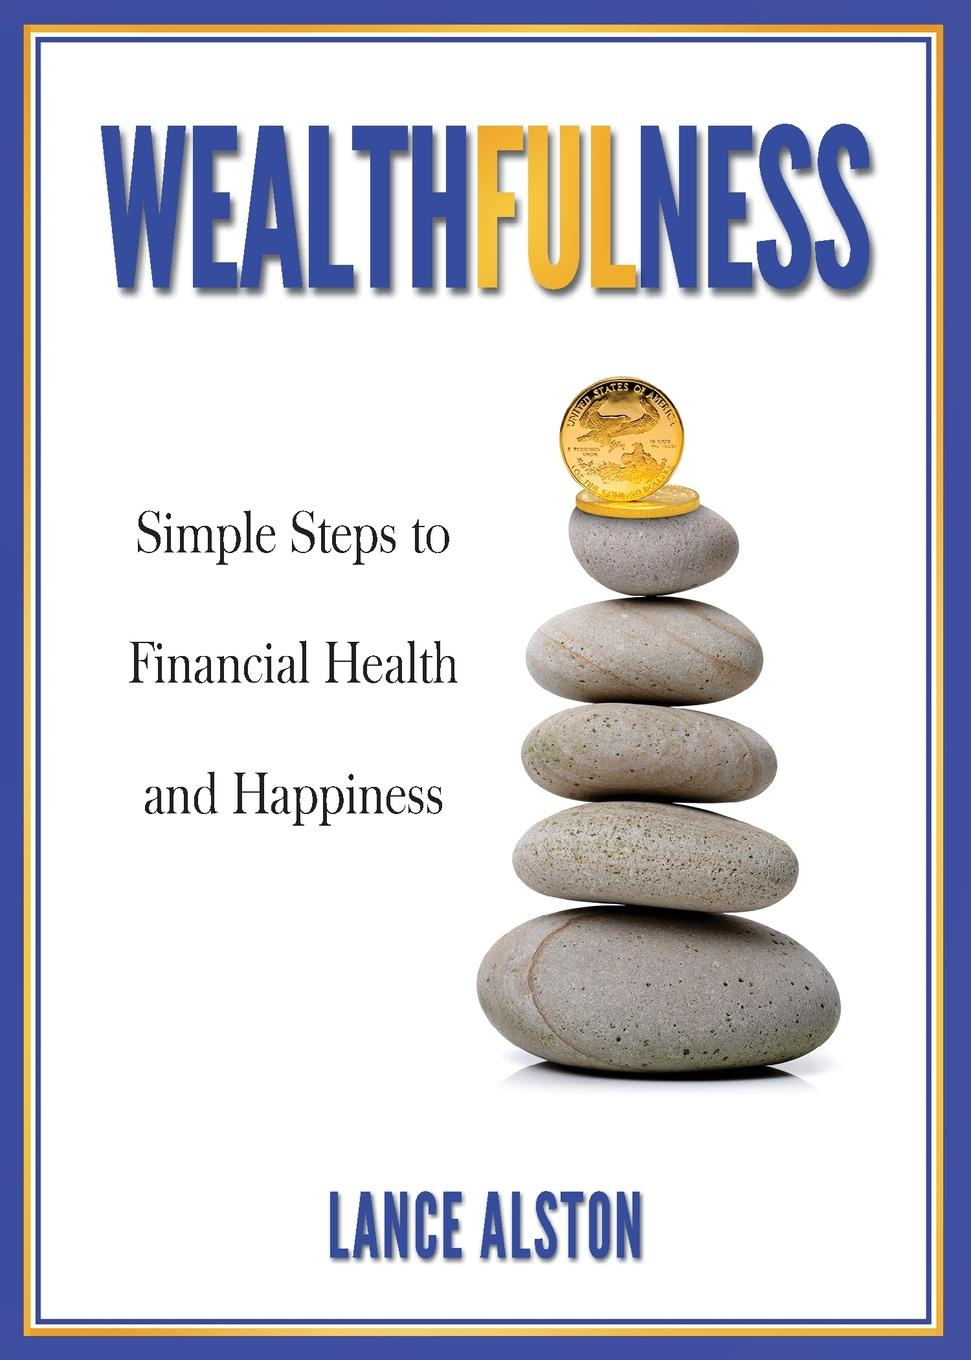 Wealthfulness. Simple Steps to Financial Health and Happiness